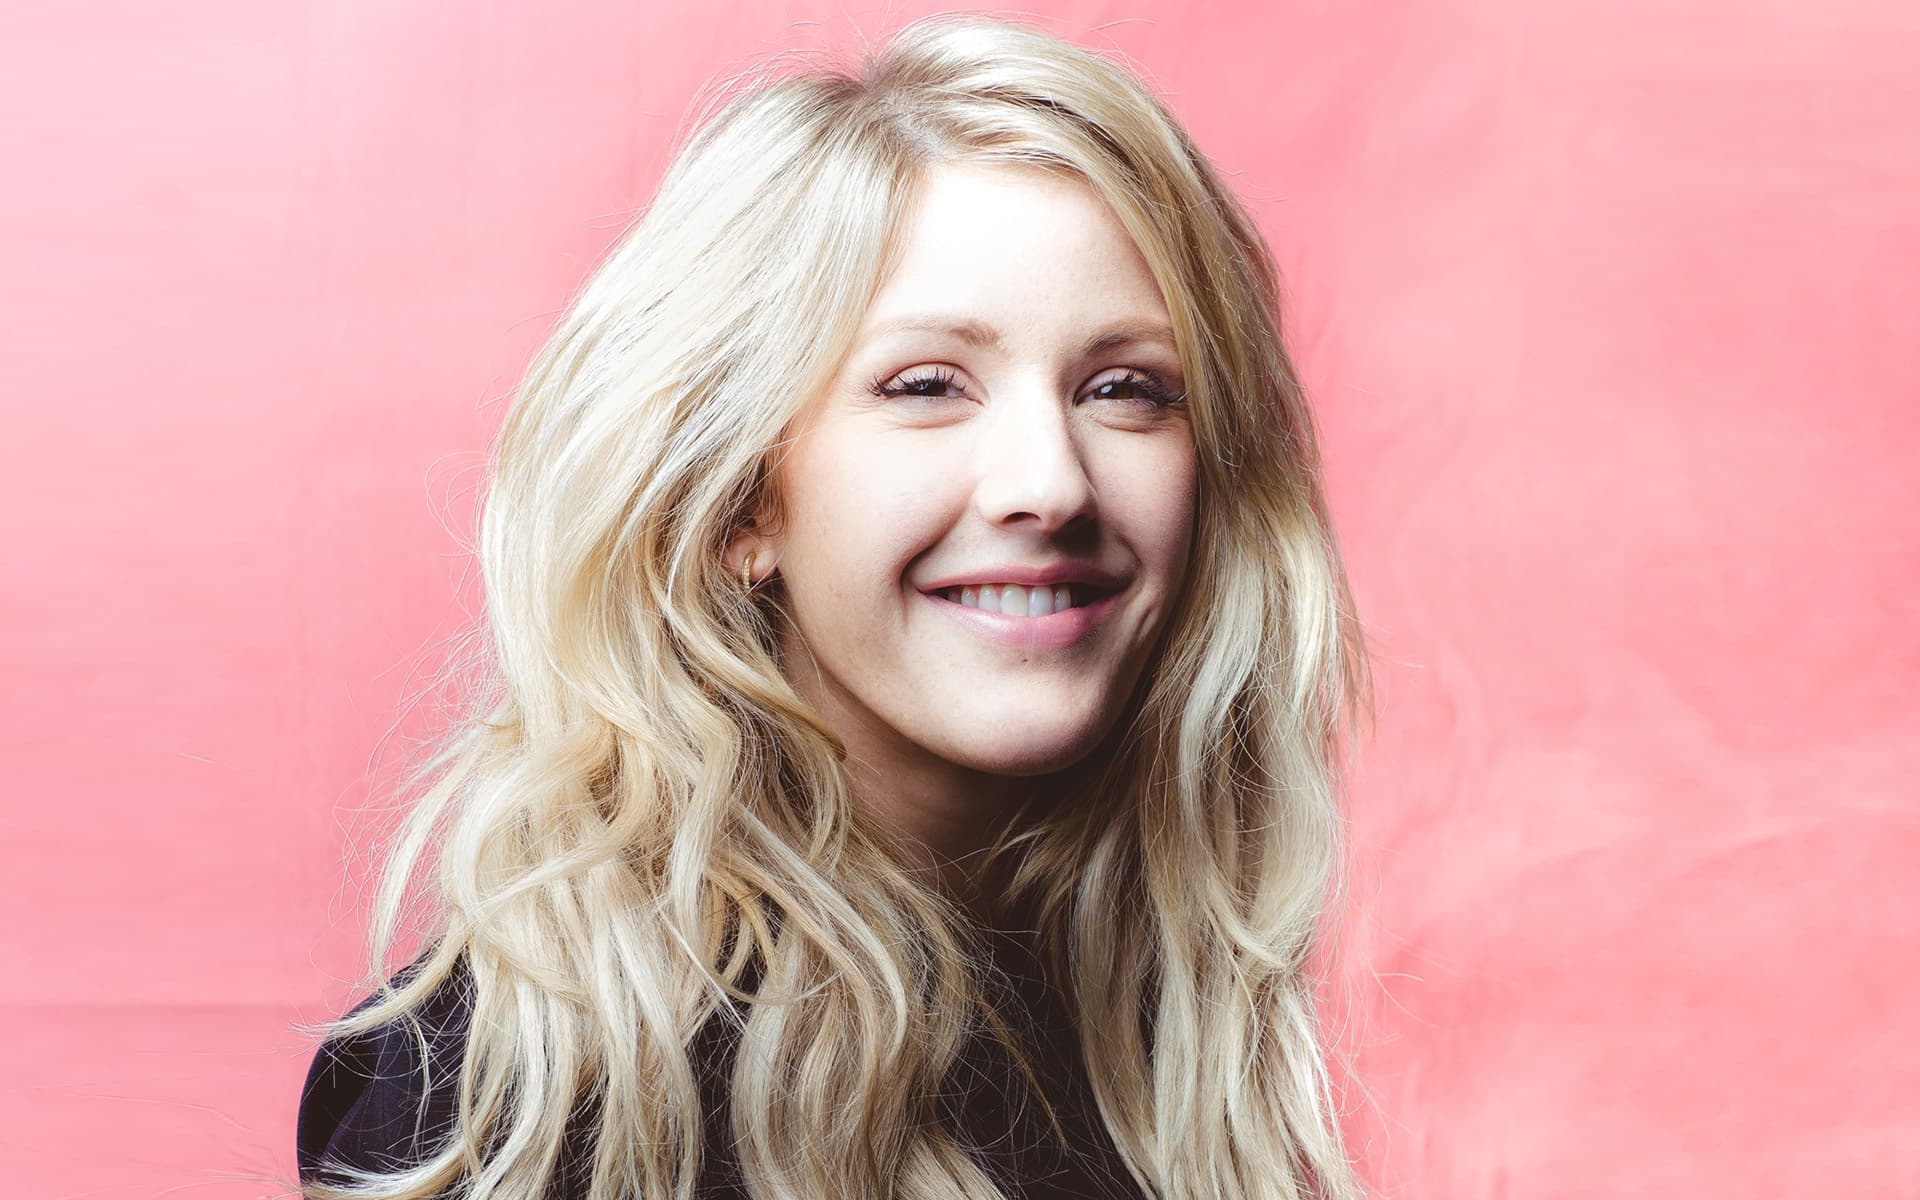 17 ellie goulding wallpapers high quality download